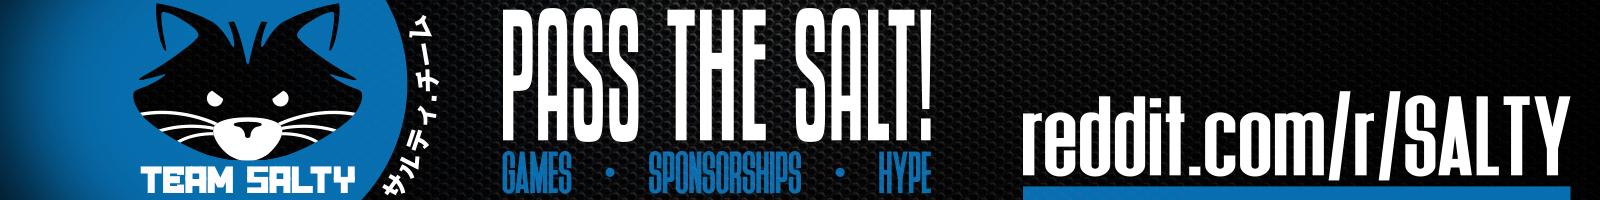 R Salty Teespring Discover our exclusive online offers for mobile subscriptions. r salty teespring